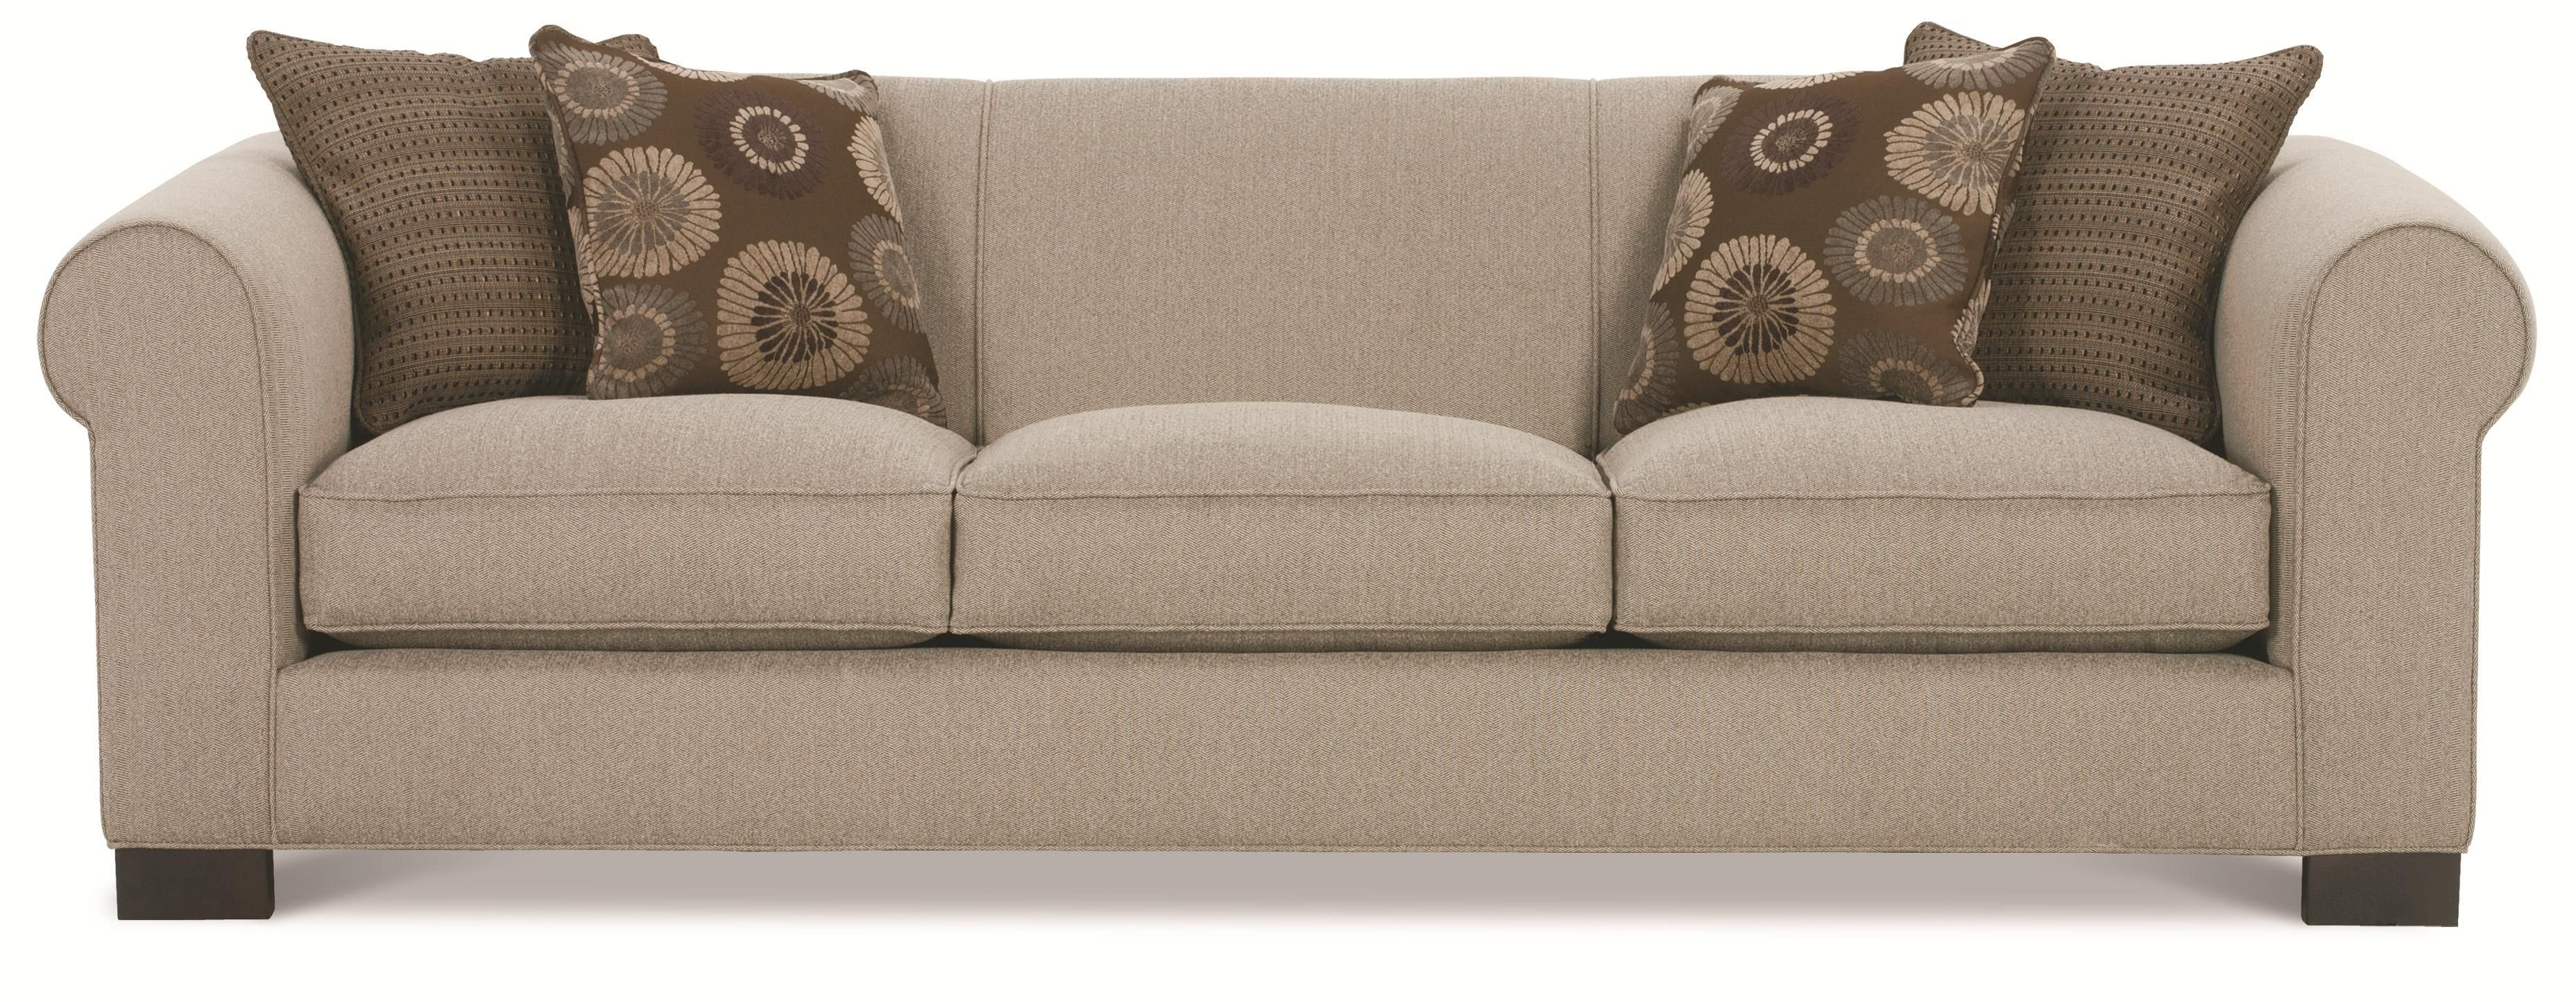 Galloway Three Seat Sofa With Rolled Arms By Rowe   Zaku0027s Fine Furniture    Sofa